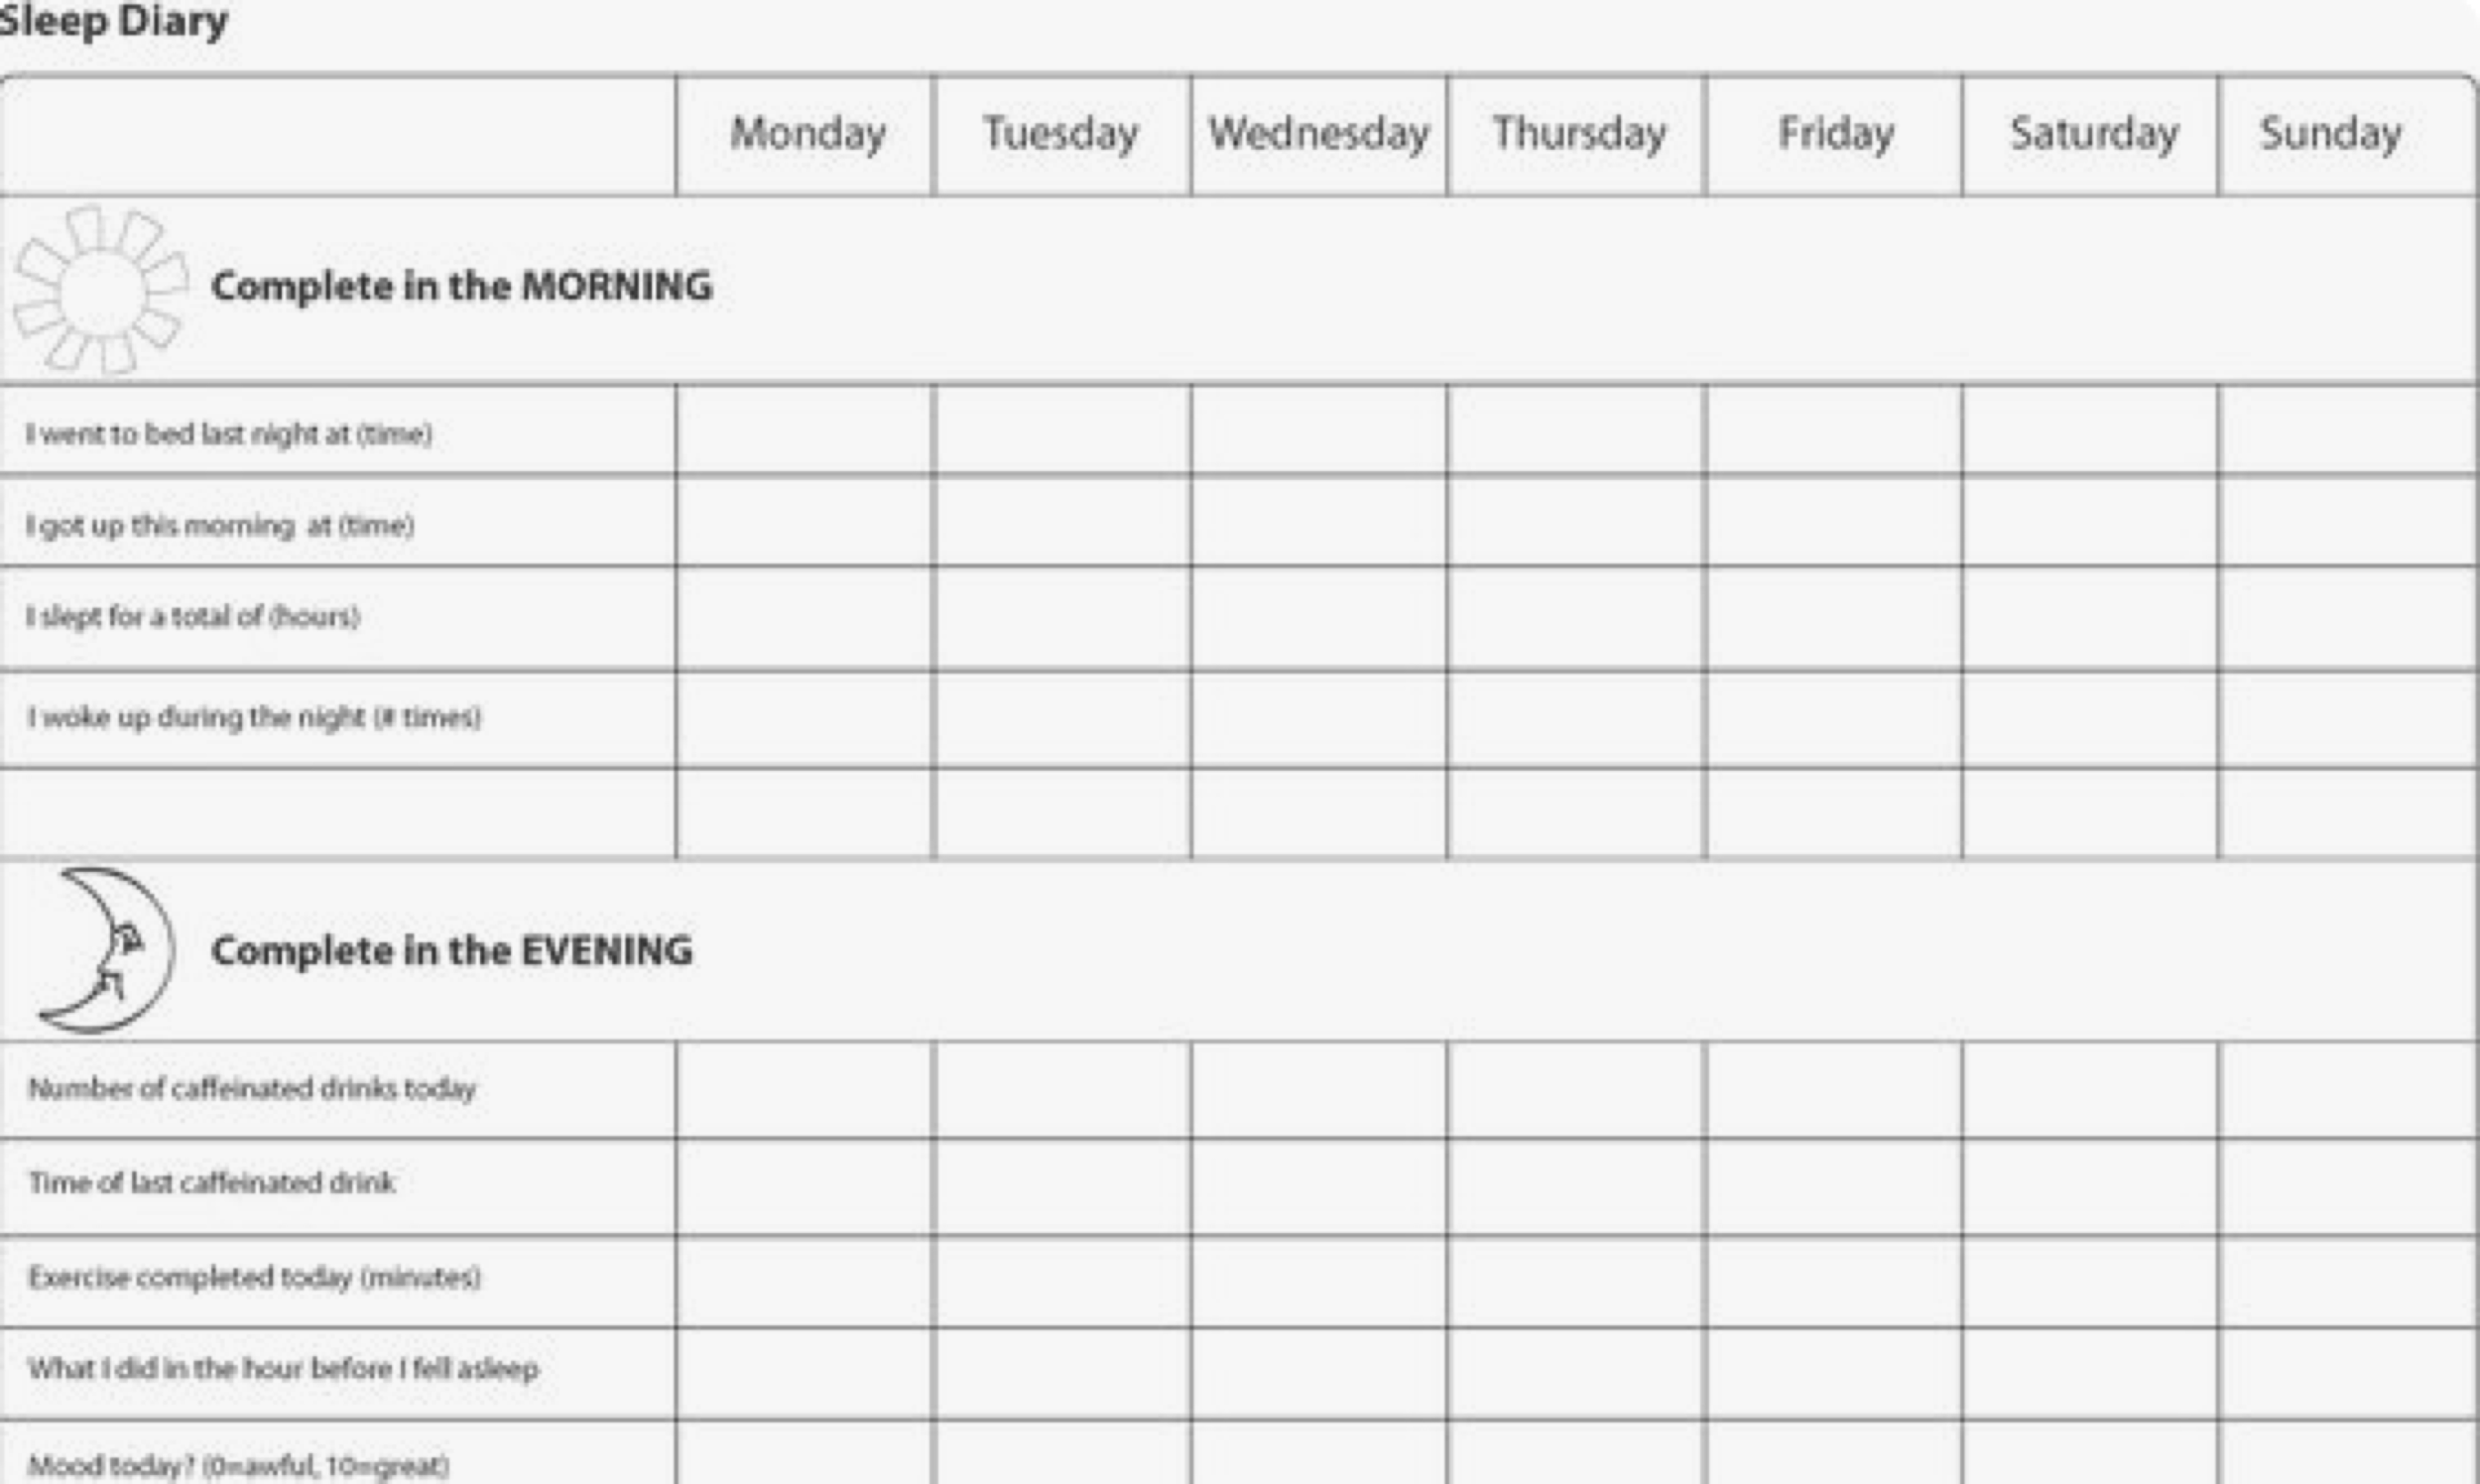 Example of a sleep diary.  Picture from psychologytools.com.